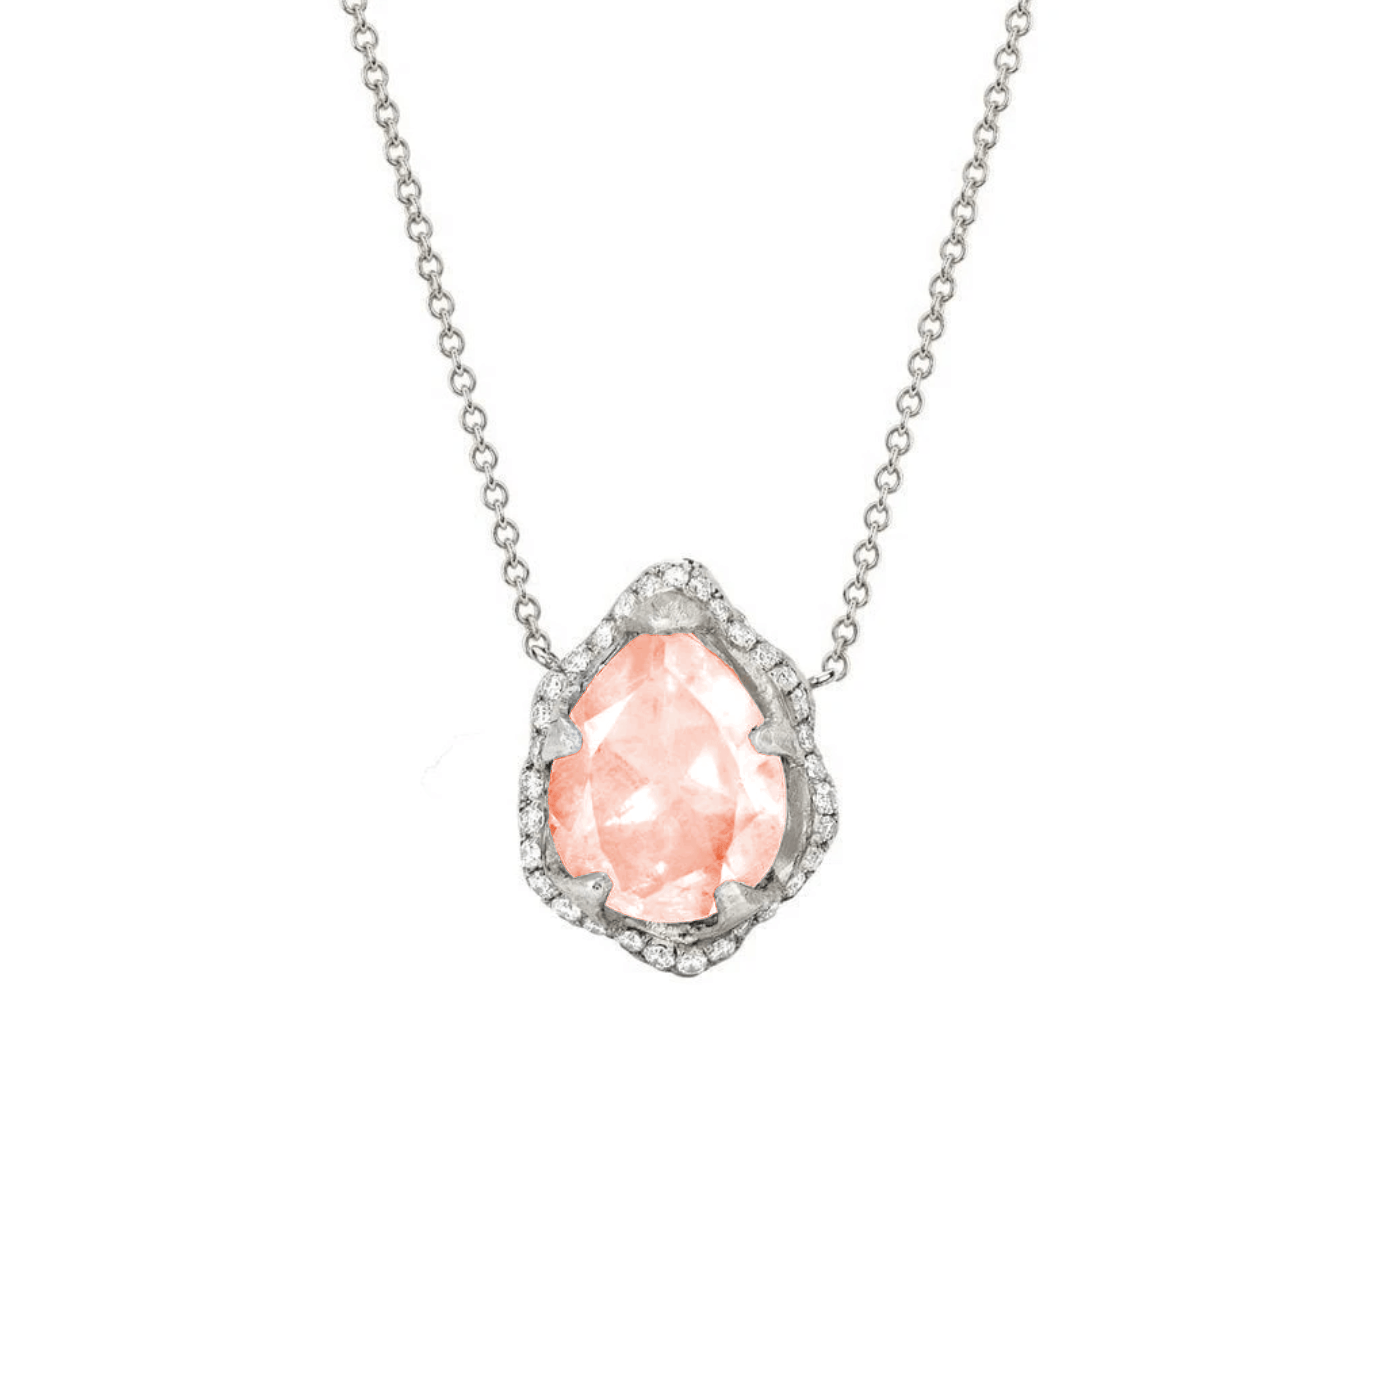 NEW! Baby Queen Water Drop Morganite Necklace with Full Pavé Halo